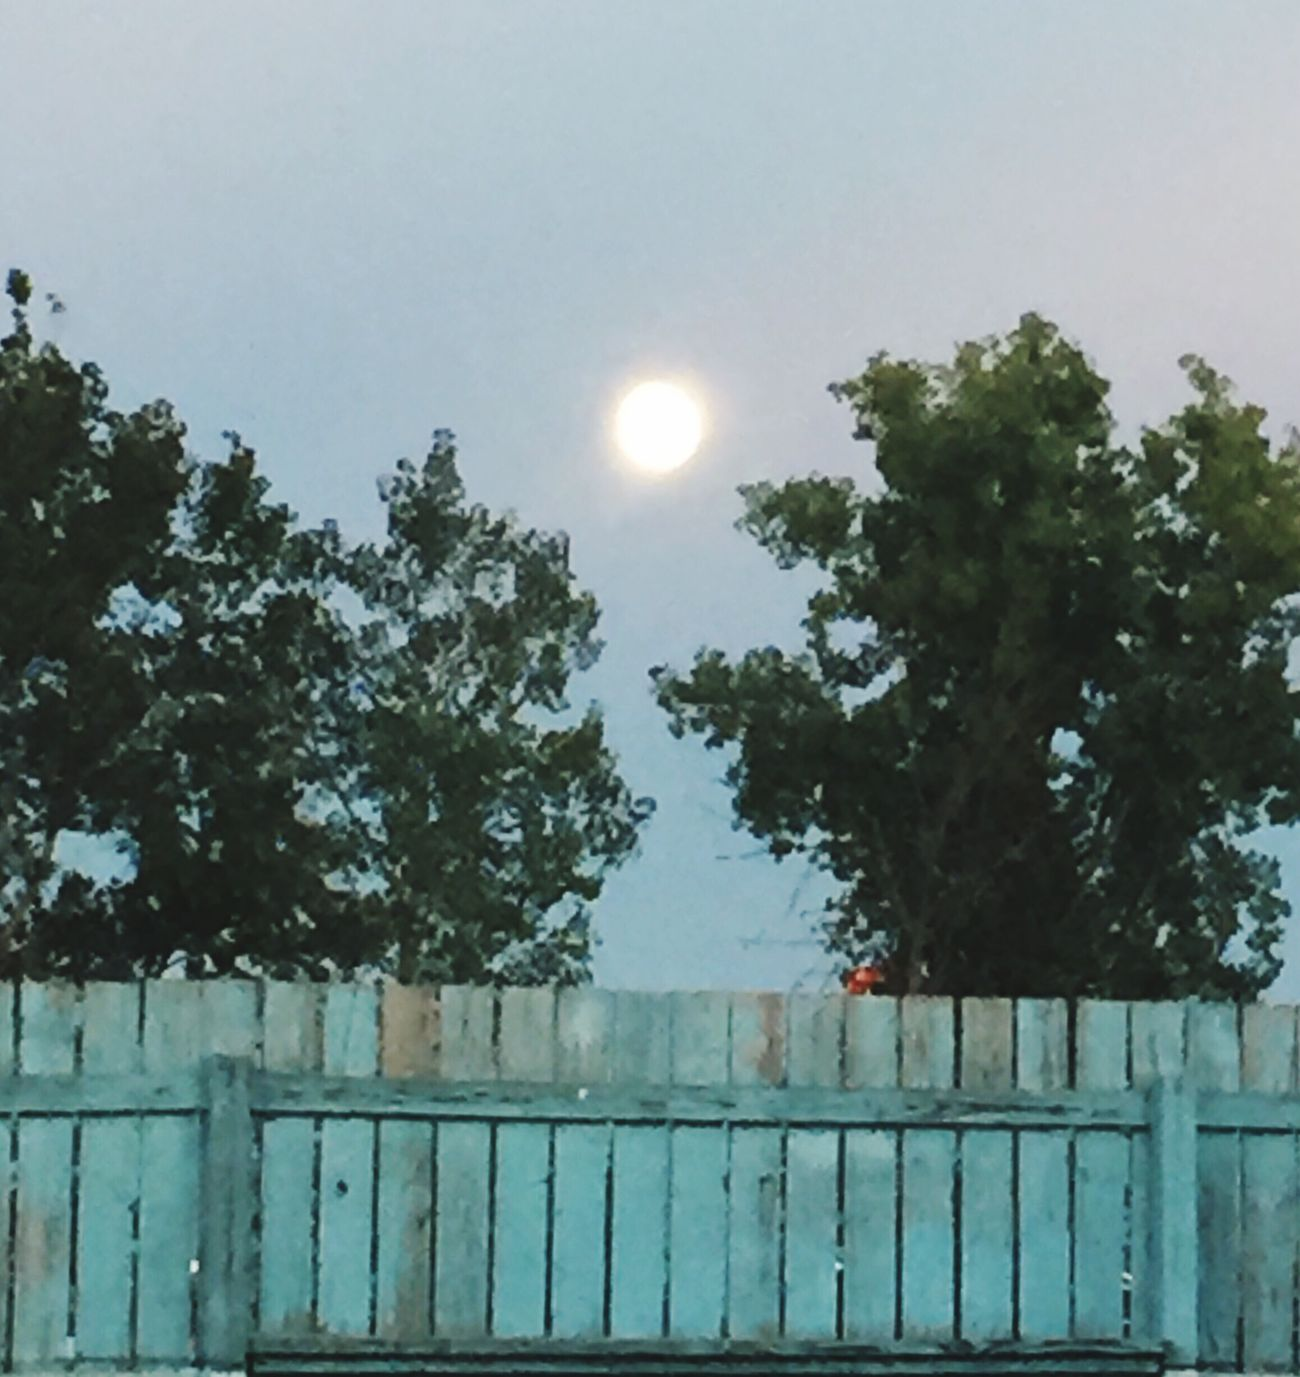 The night before the full moon Sky Nature Moon Light Outdoors Almost